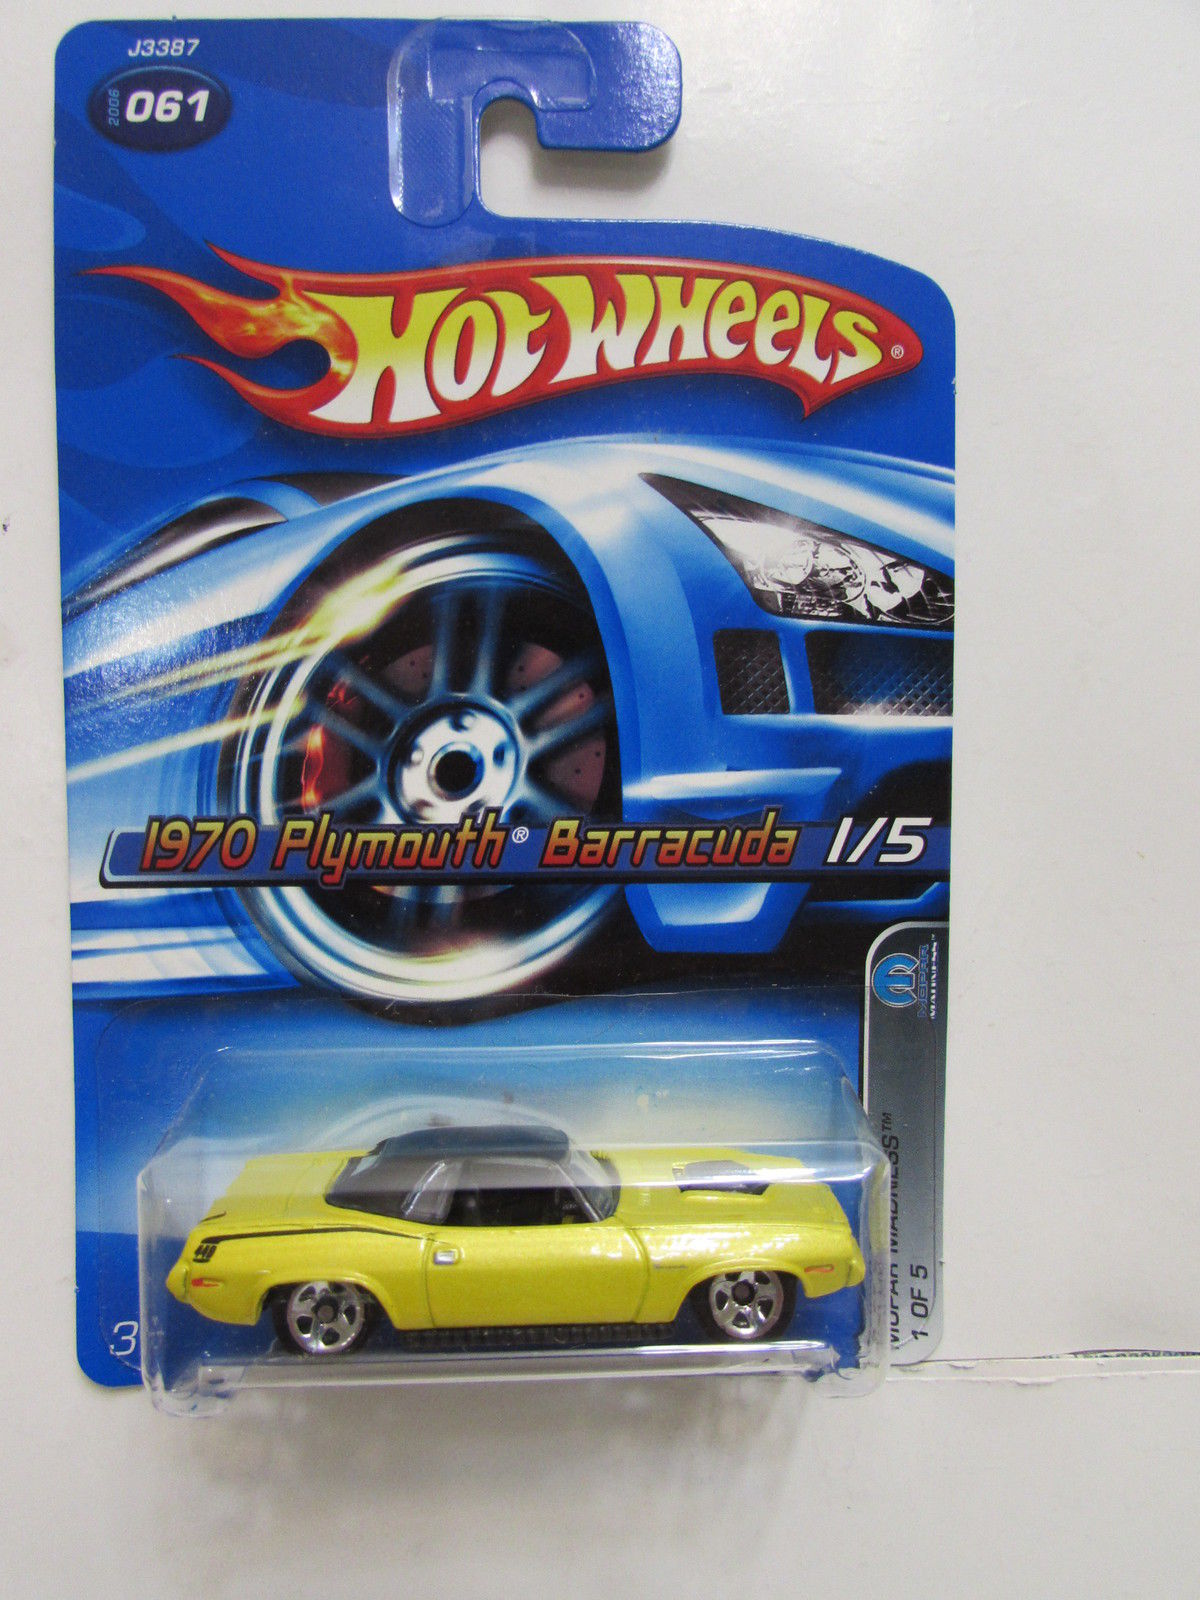 HOT WHEELS 2006 1970 PLYMOUTH BARRACUDA 1/5 MOPAR MADNESS YELLOW